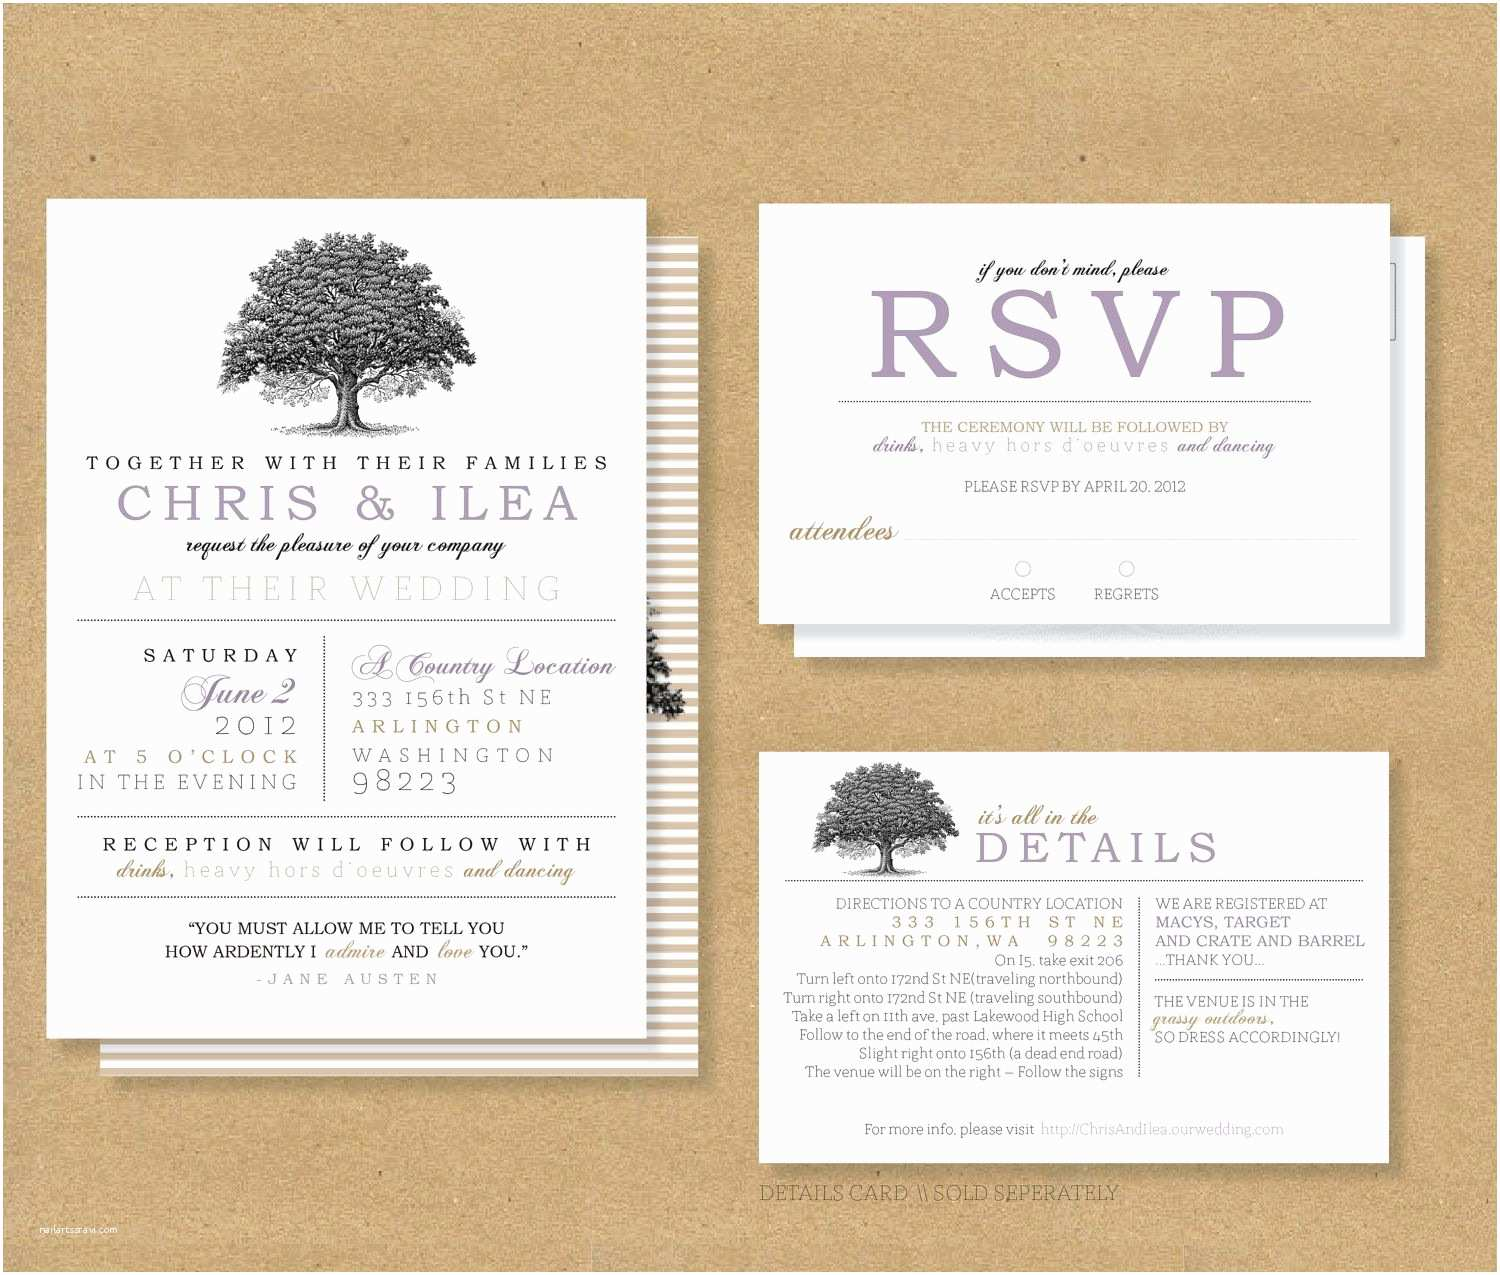 Wedding Invitation Examples Wedding Invitation Wedding Rsvp Wording Samples Tips